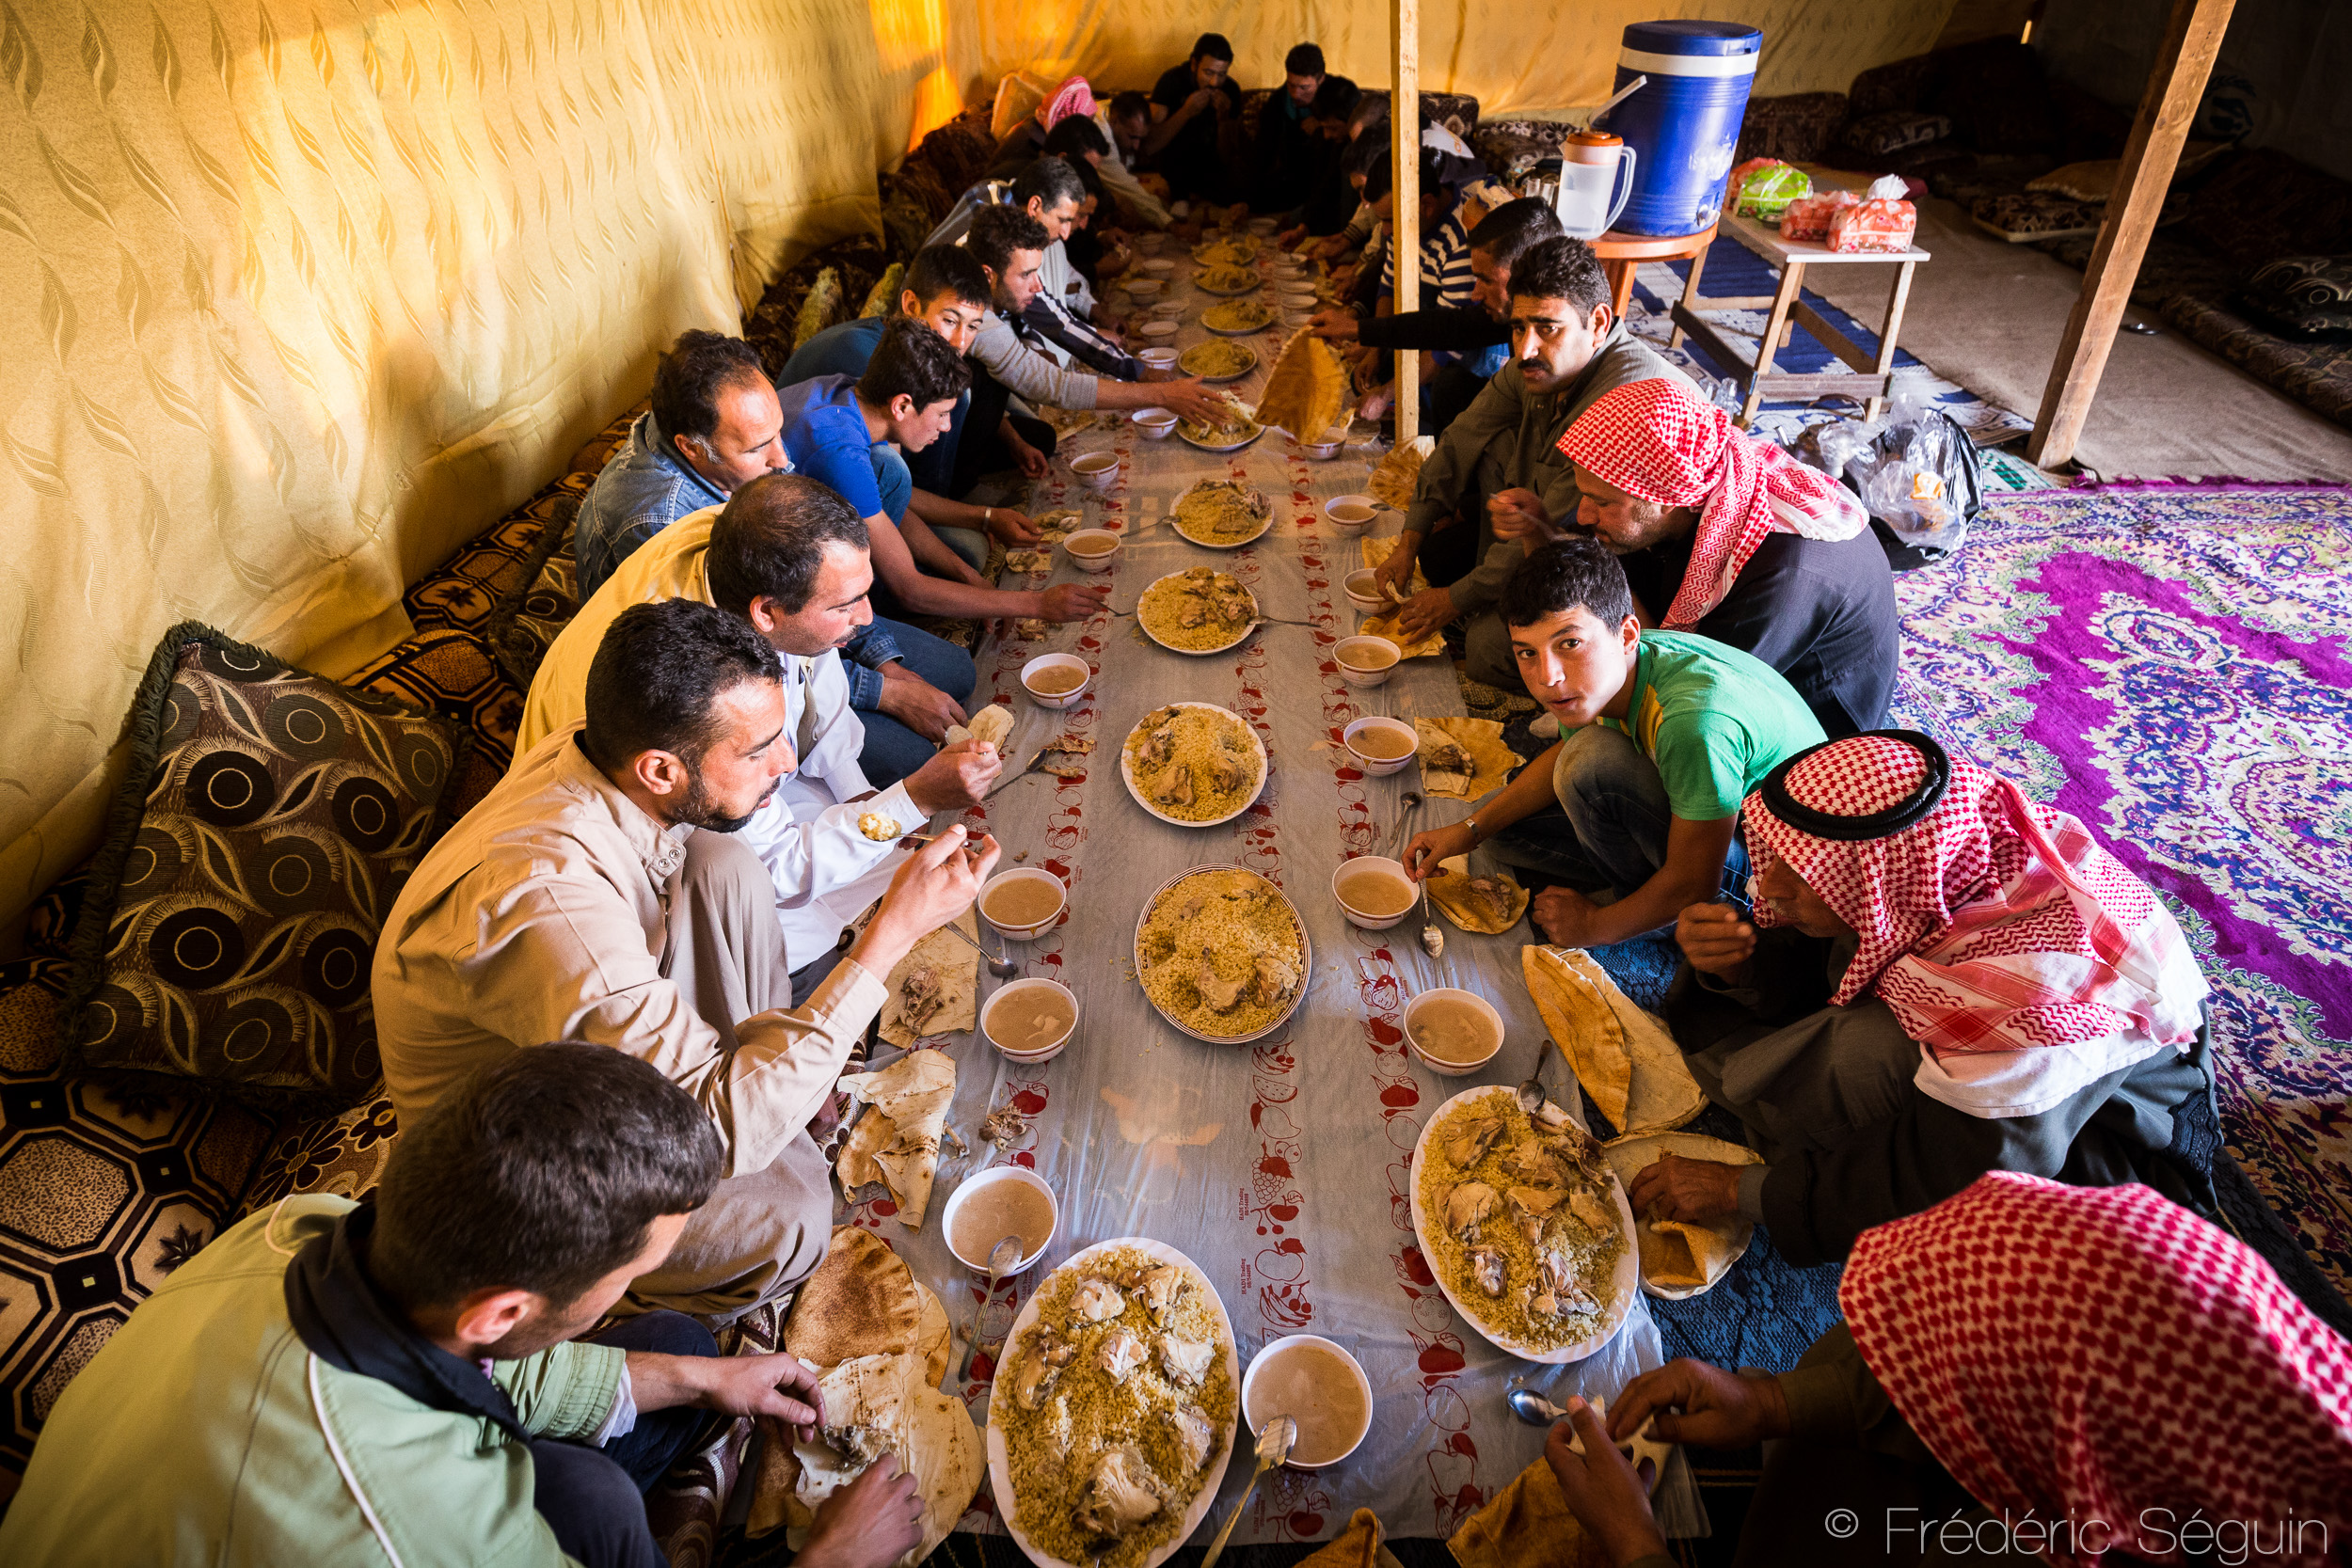 Refugees celebrating Ramadan together in a Syrian refugee camp in Lebanon. Photo credit: Frédéric Séguin,  Lebanon- The Other Side of the Sea .